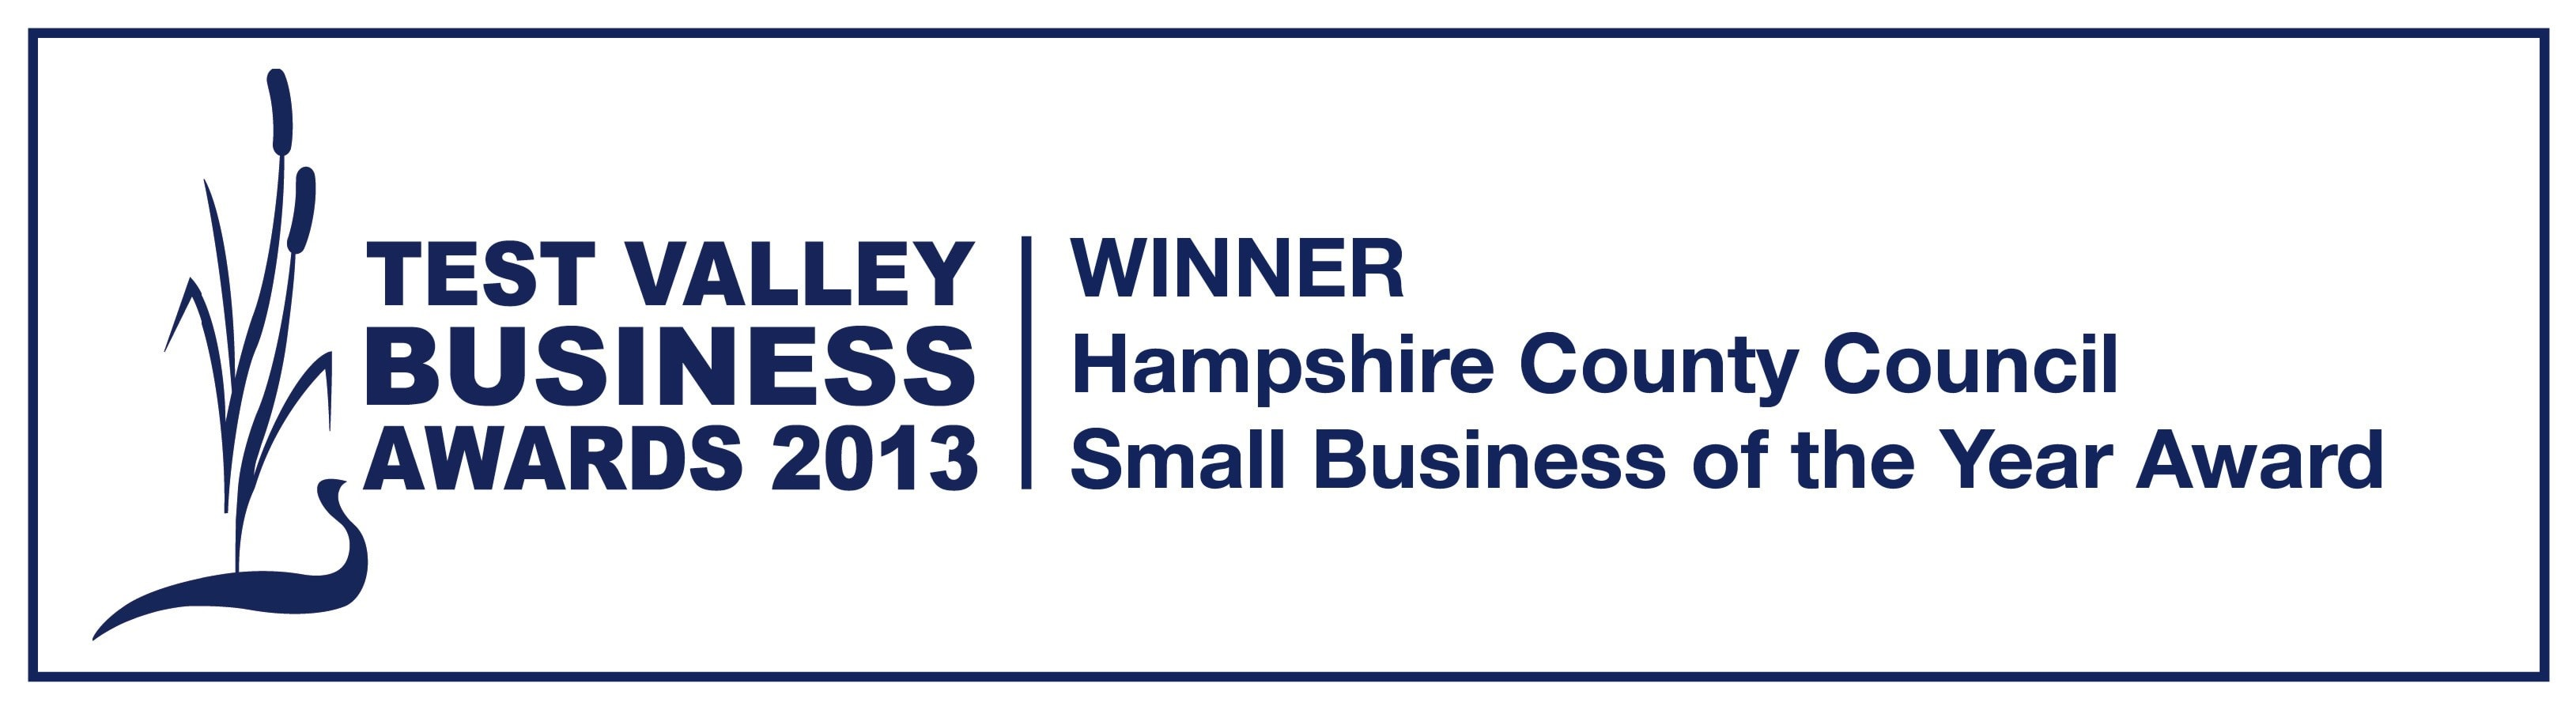 Test Valley business winner 2013